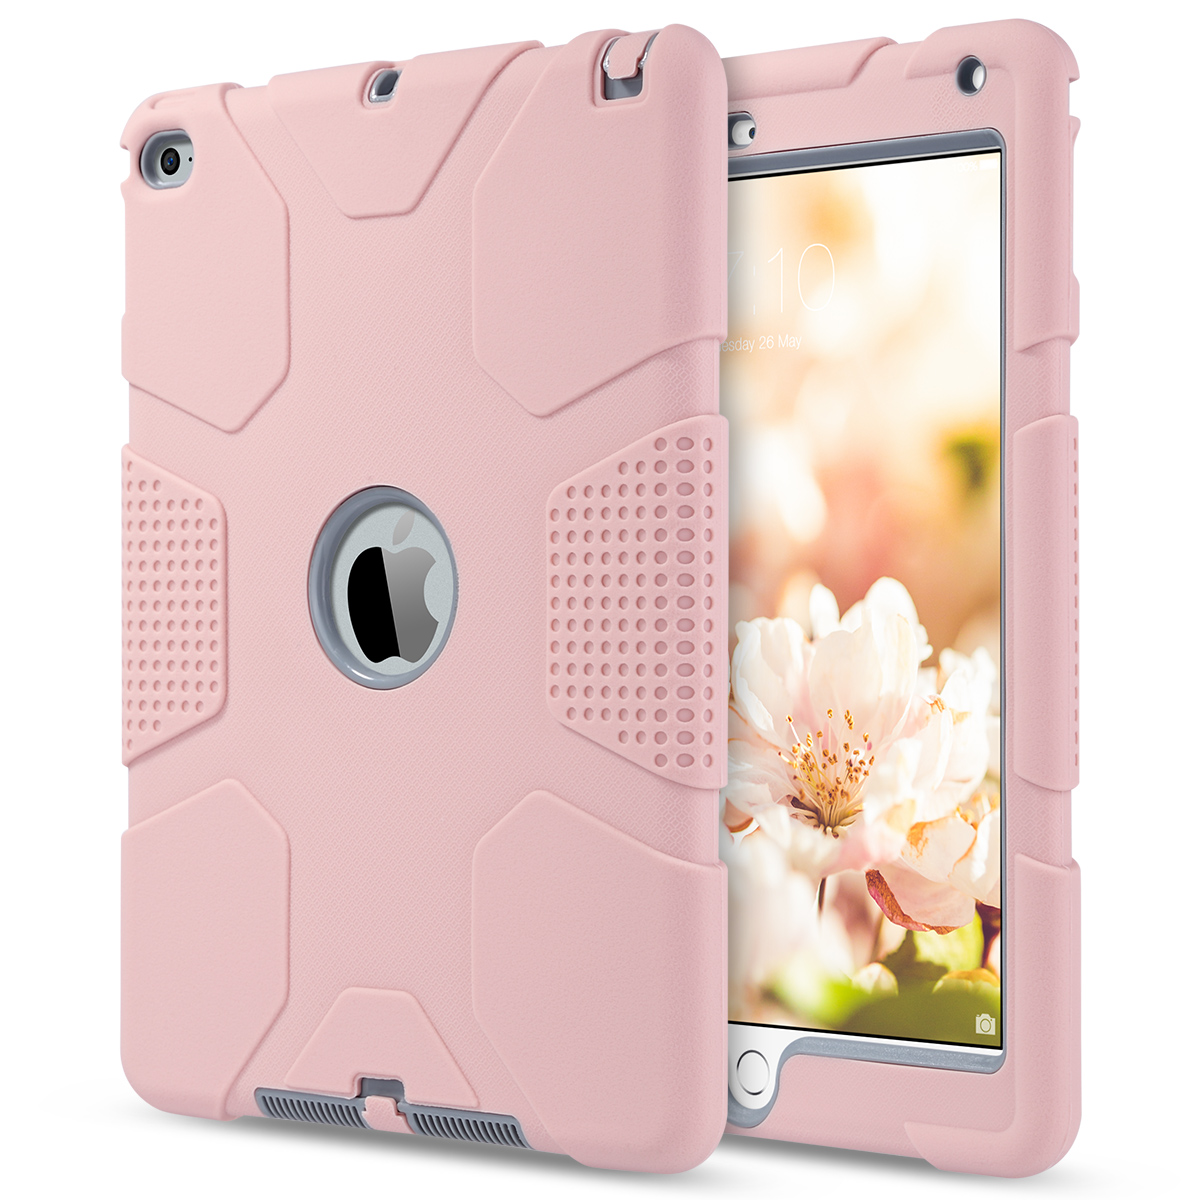 Shockproof-Heavy-Duty-Rubber-With-Hard-Stand-Case-Cover-For-Apple-iPad-Air-2 thumbnail 40